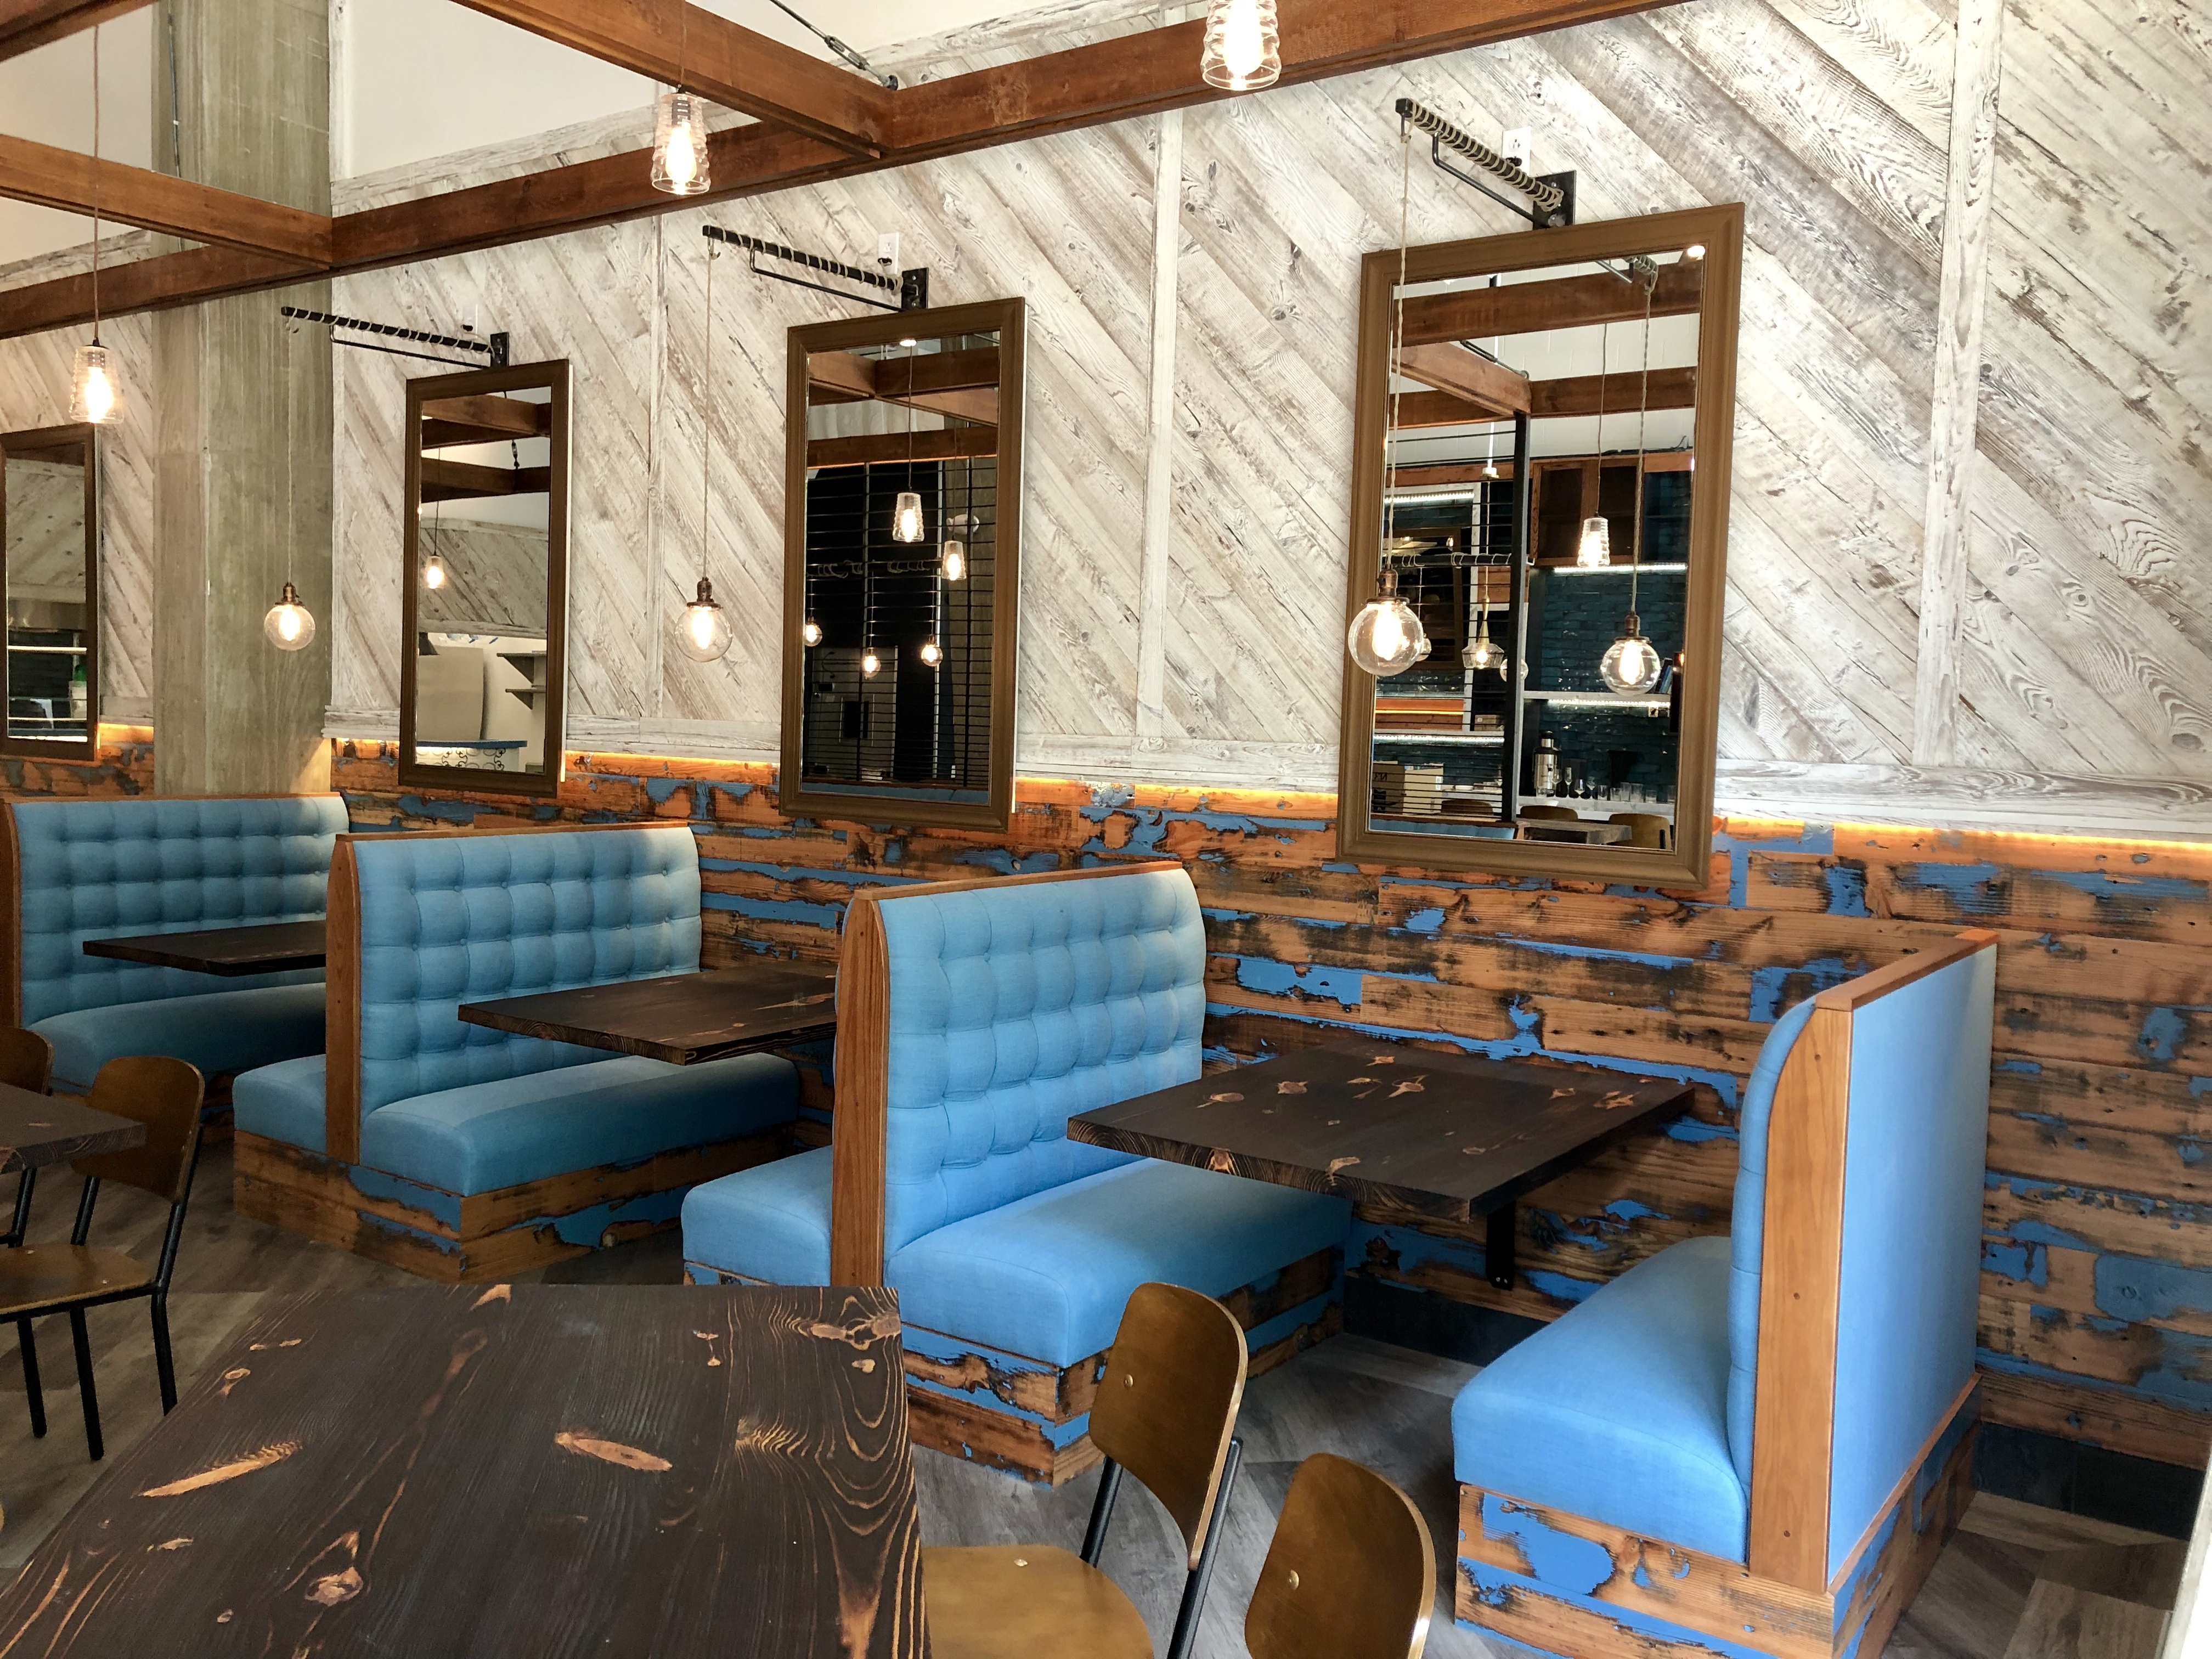 D.C. Deli Featured on Food Network Is Almost Ready to Open in Fancy NoMa Digs